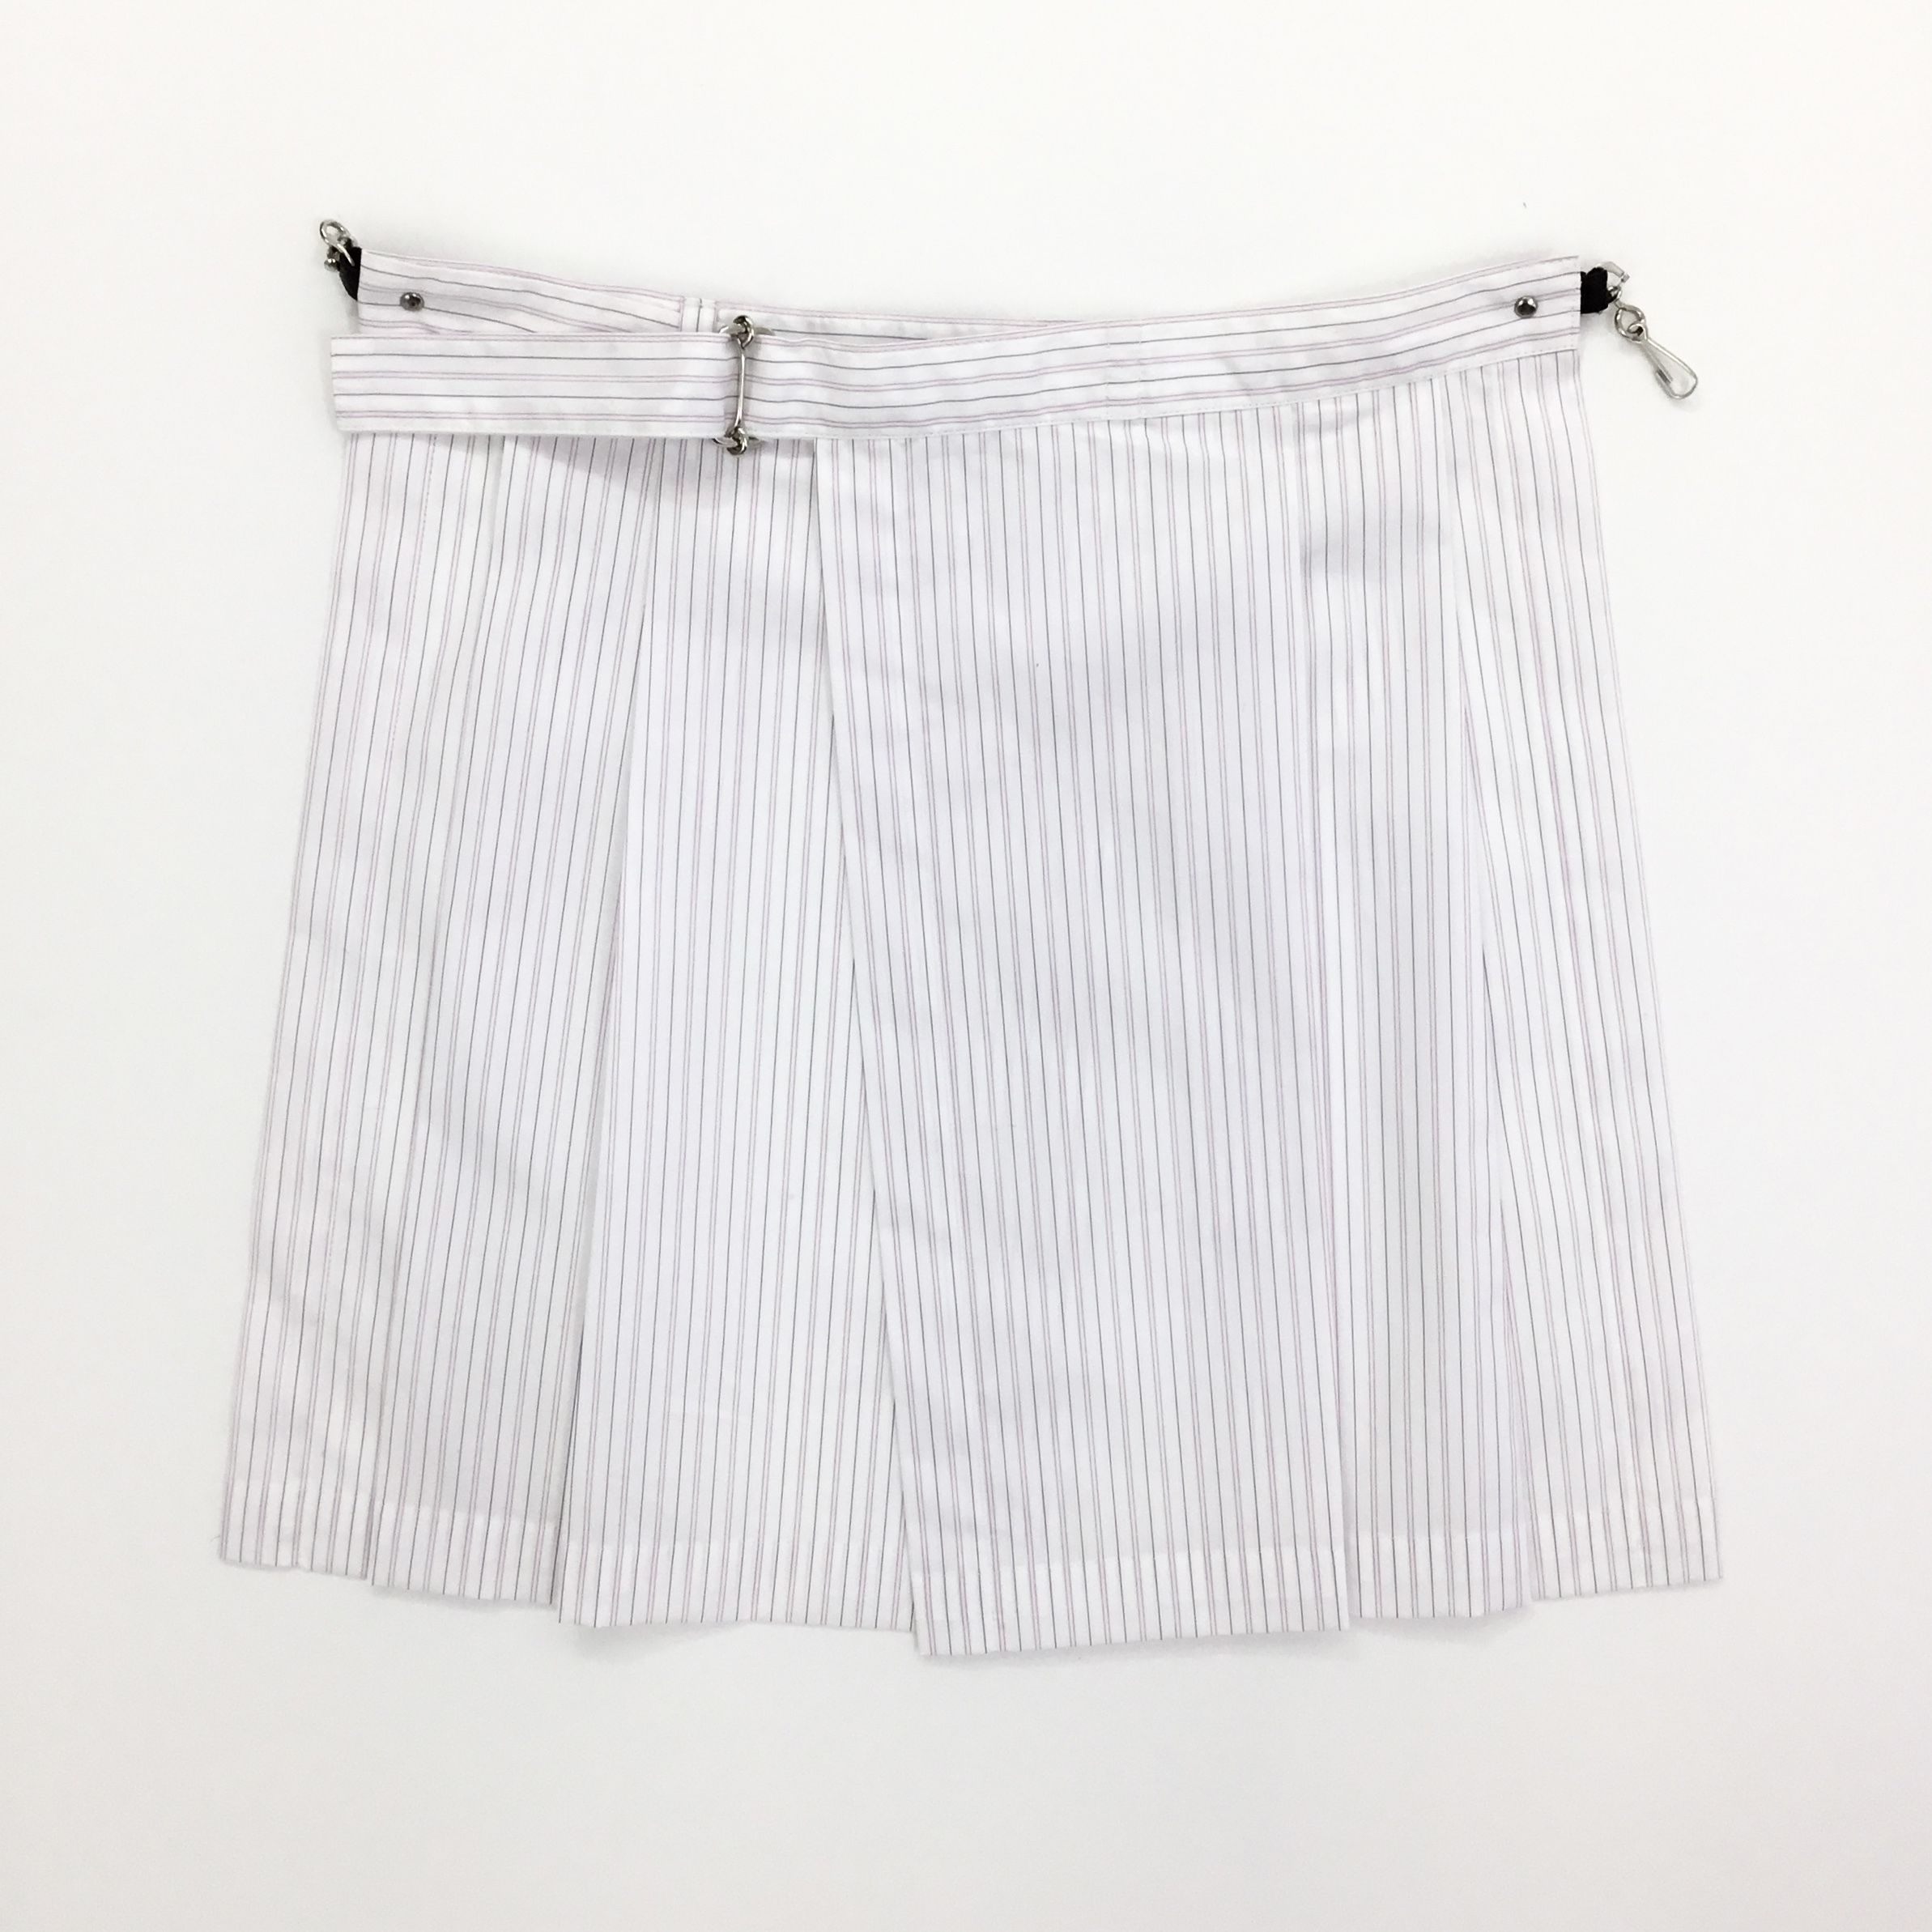 ANTHOLOGIE  /  KILTED SKIRT - STRIPE